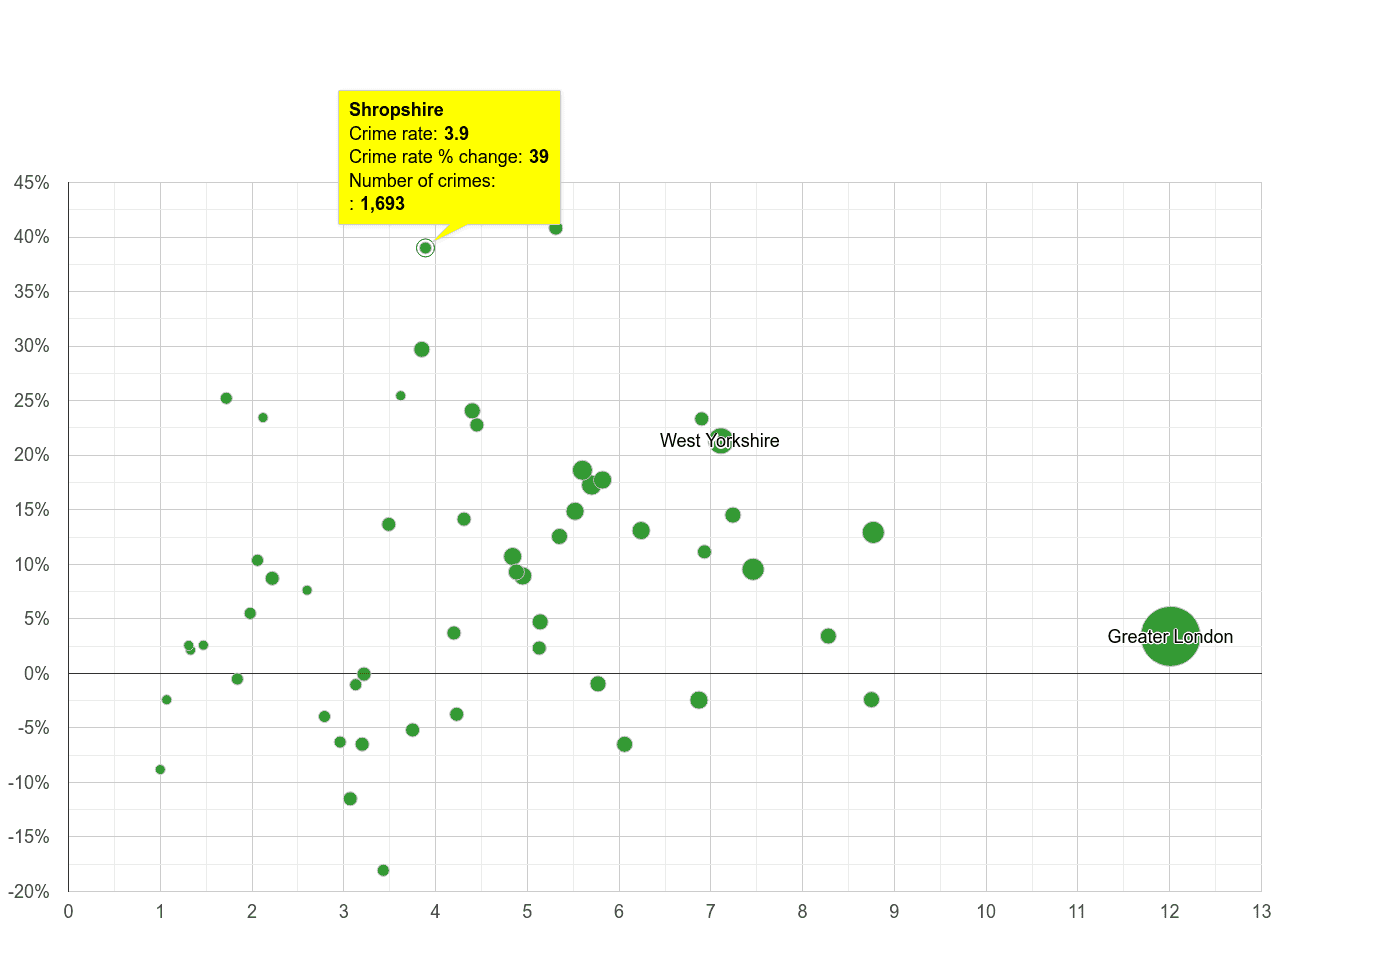 Shropshire vehicle crime rate compared to other counties